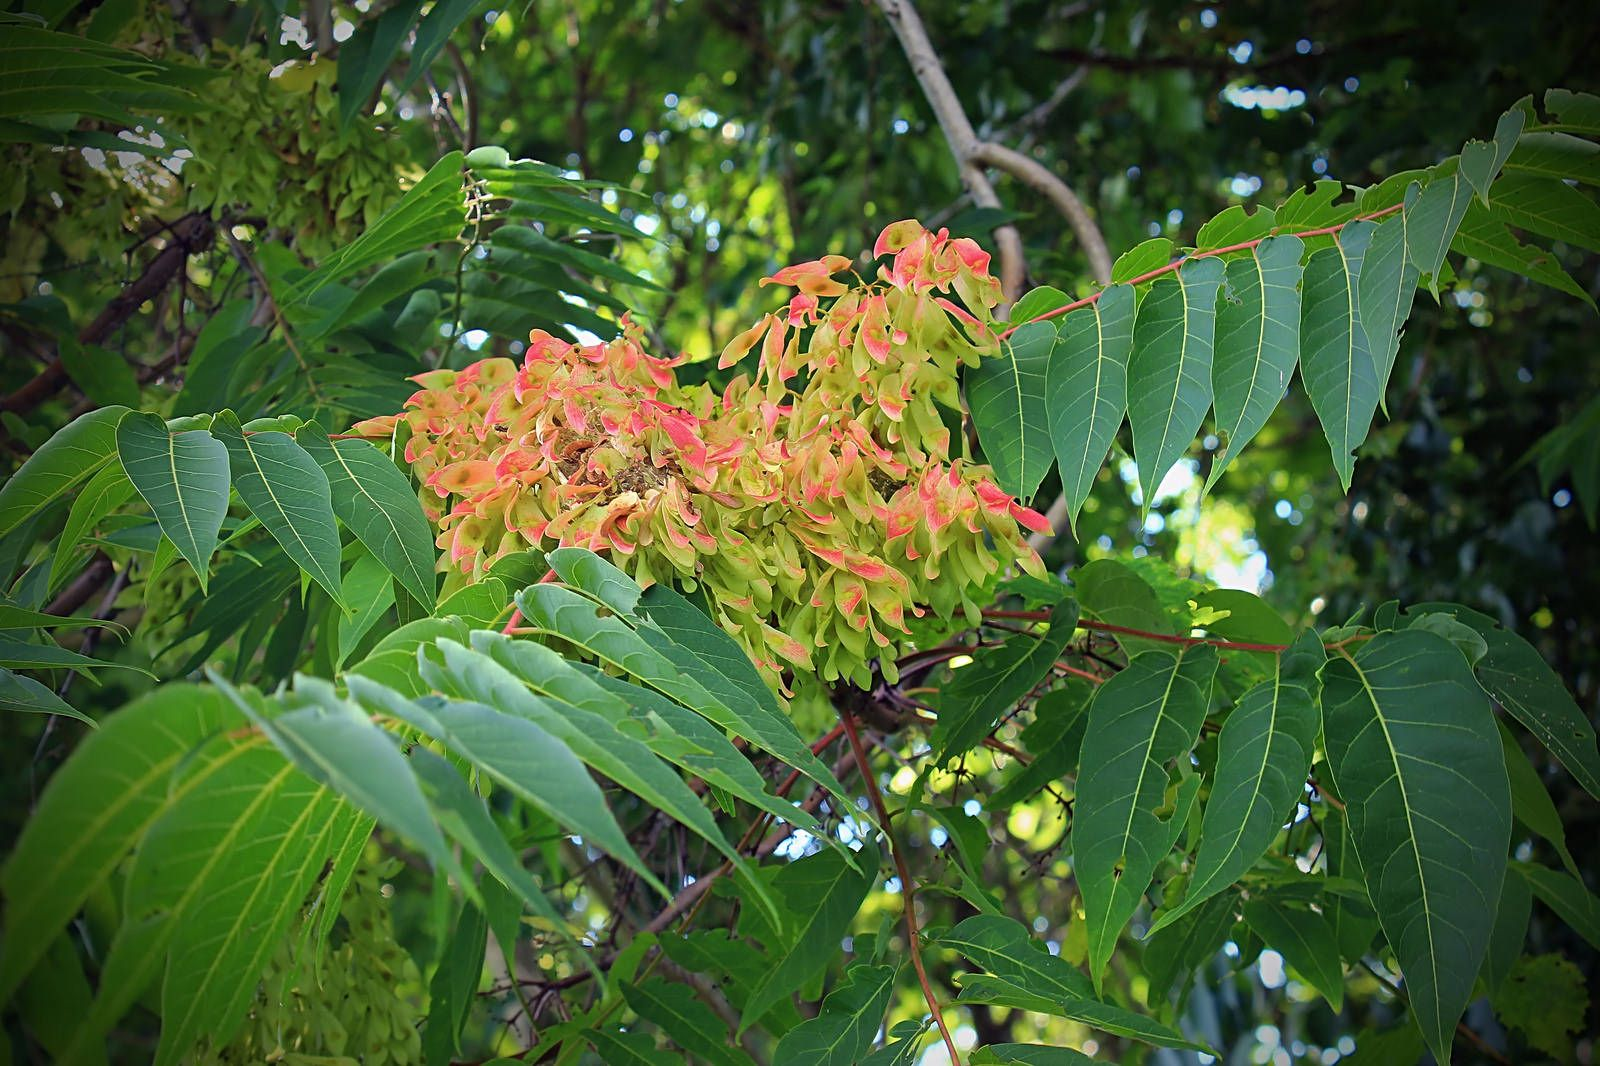 Ailanthus Altissima Plants For Sale Mail Order Or Buy At The Nursery